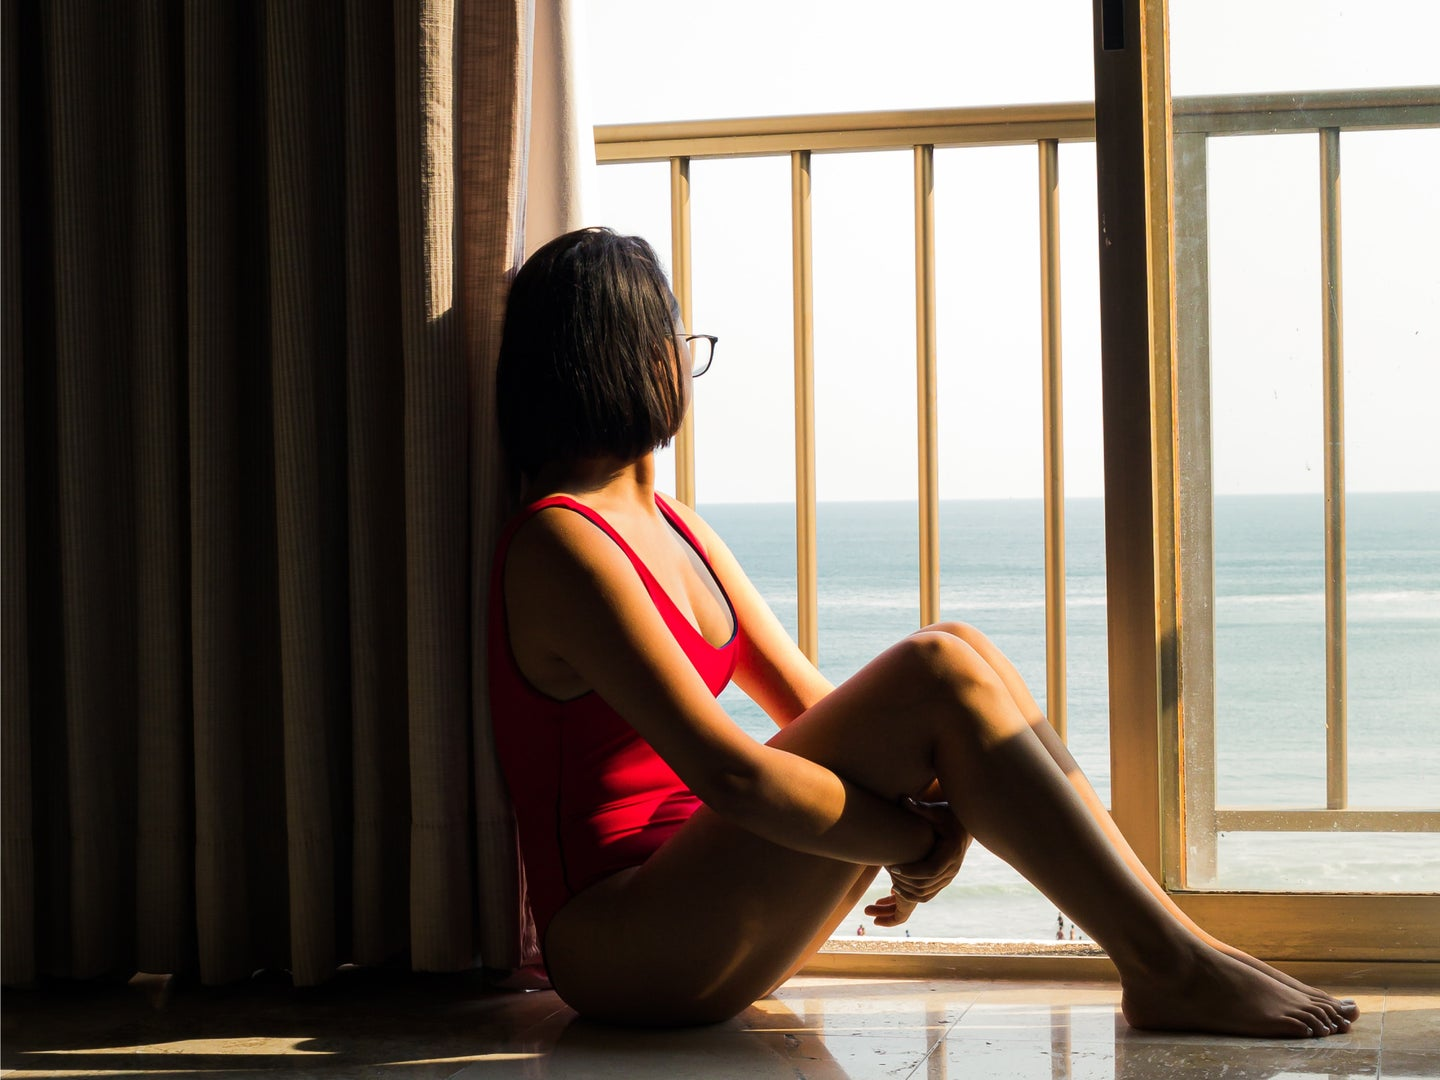 A woman in a red bathing suit sitting on the floor by a sliding glass door, staring at the ocean outside.